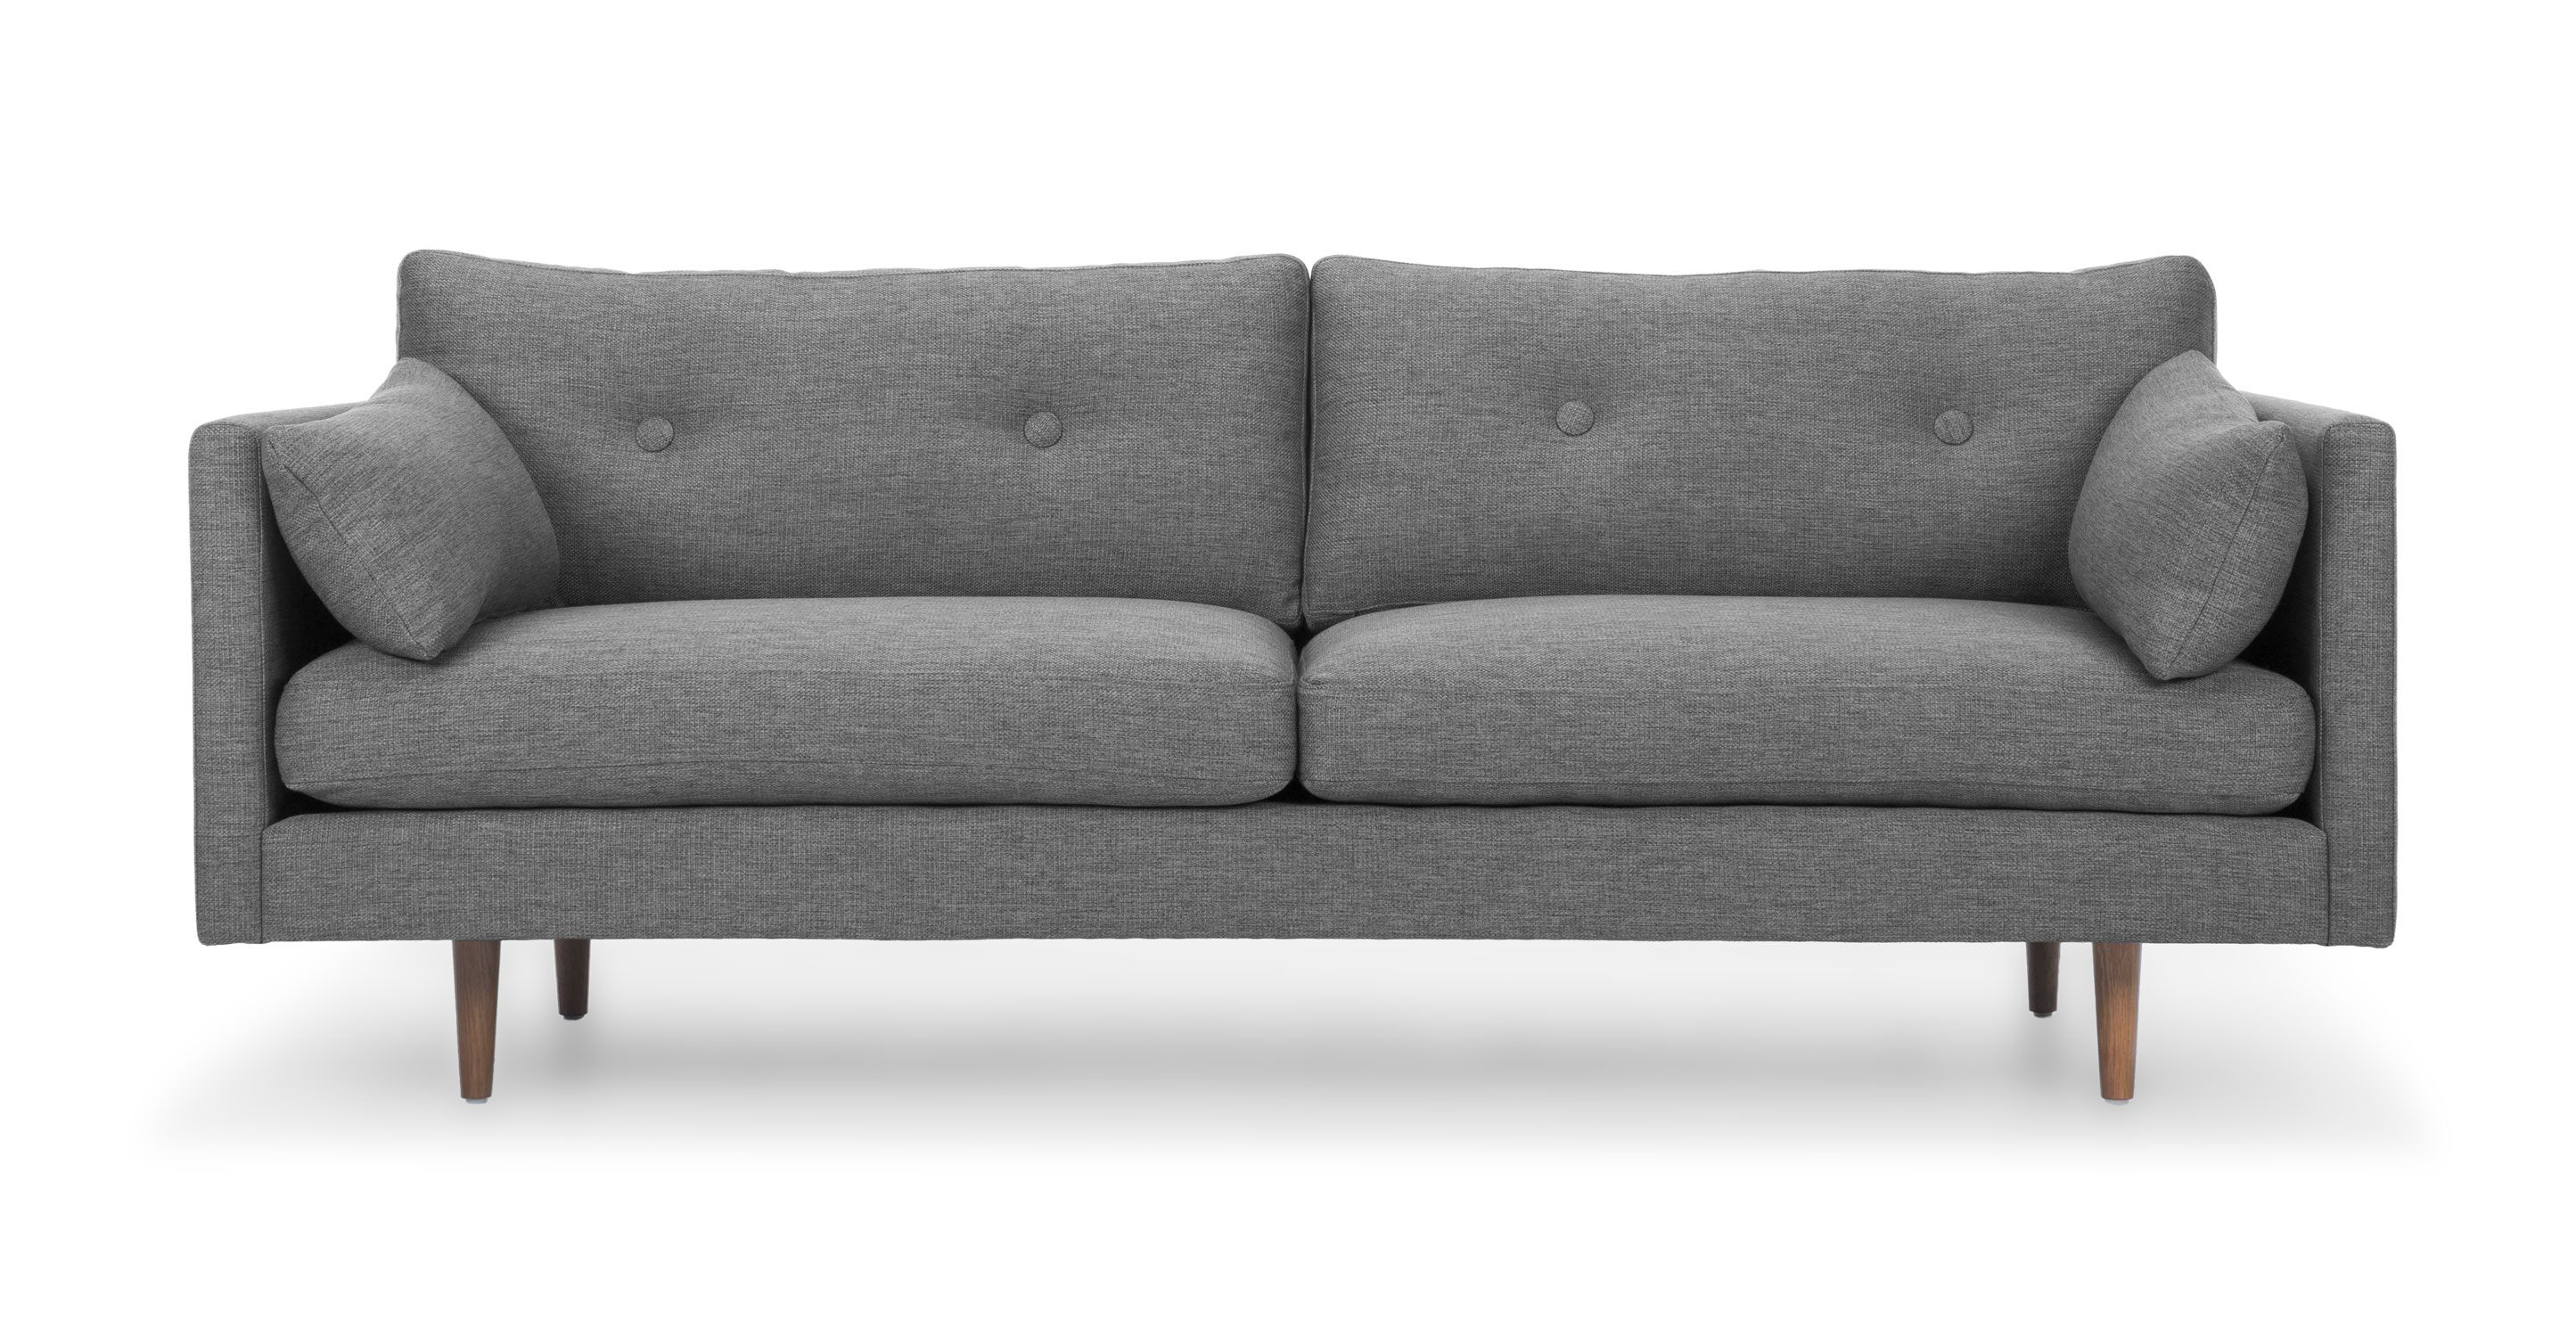 of furniture sectional couches couch century house explained sleeper modern all sofa mid